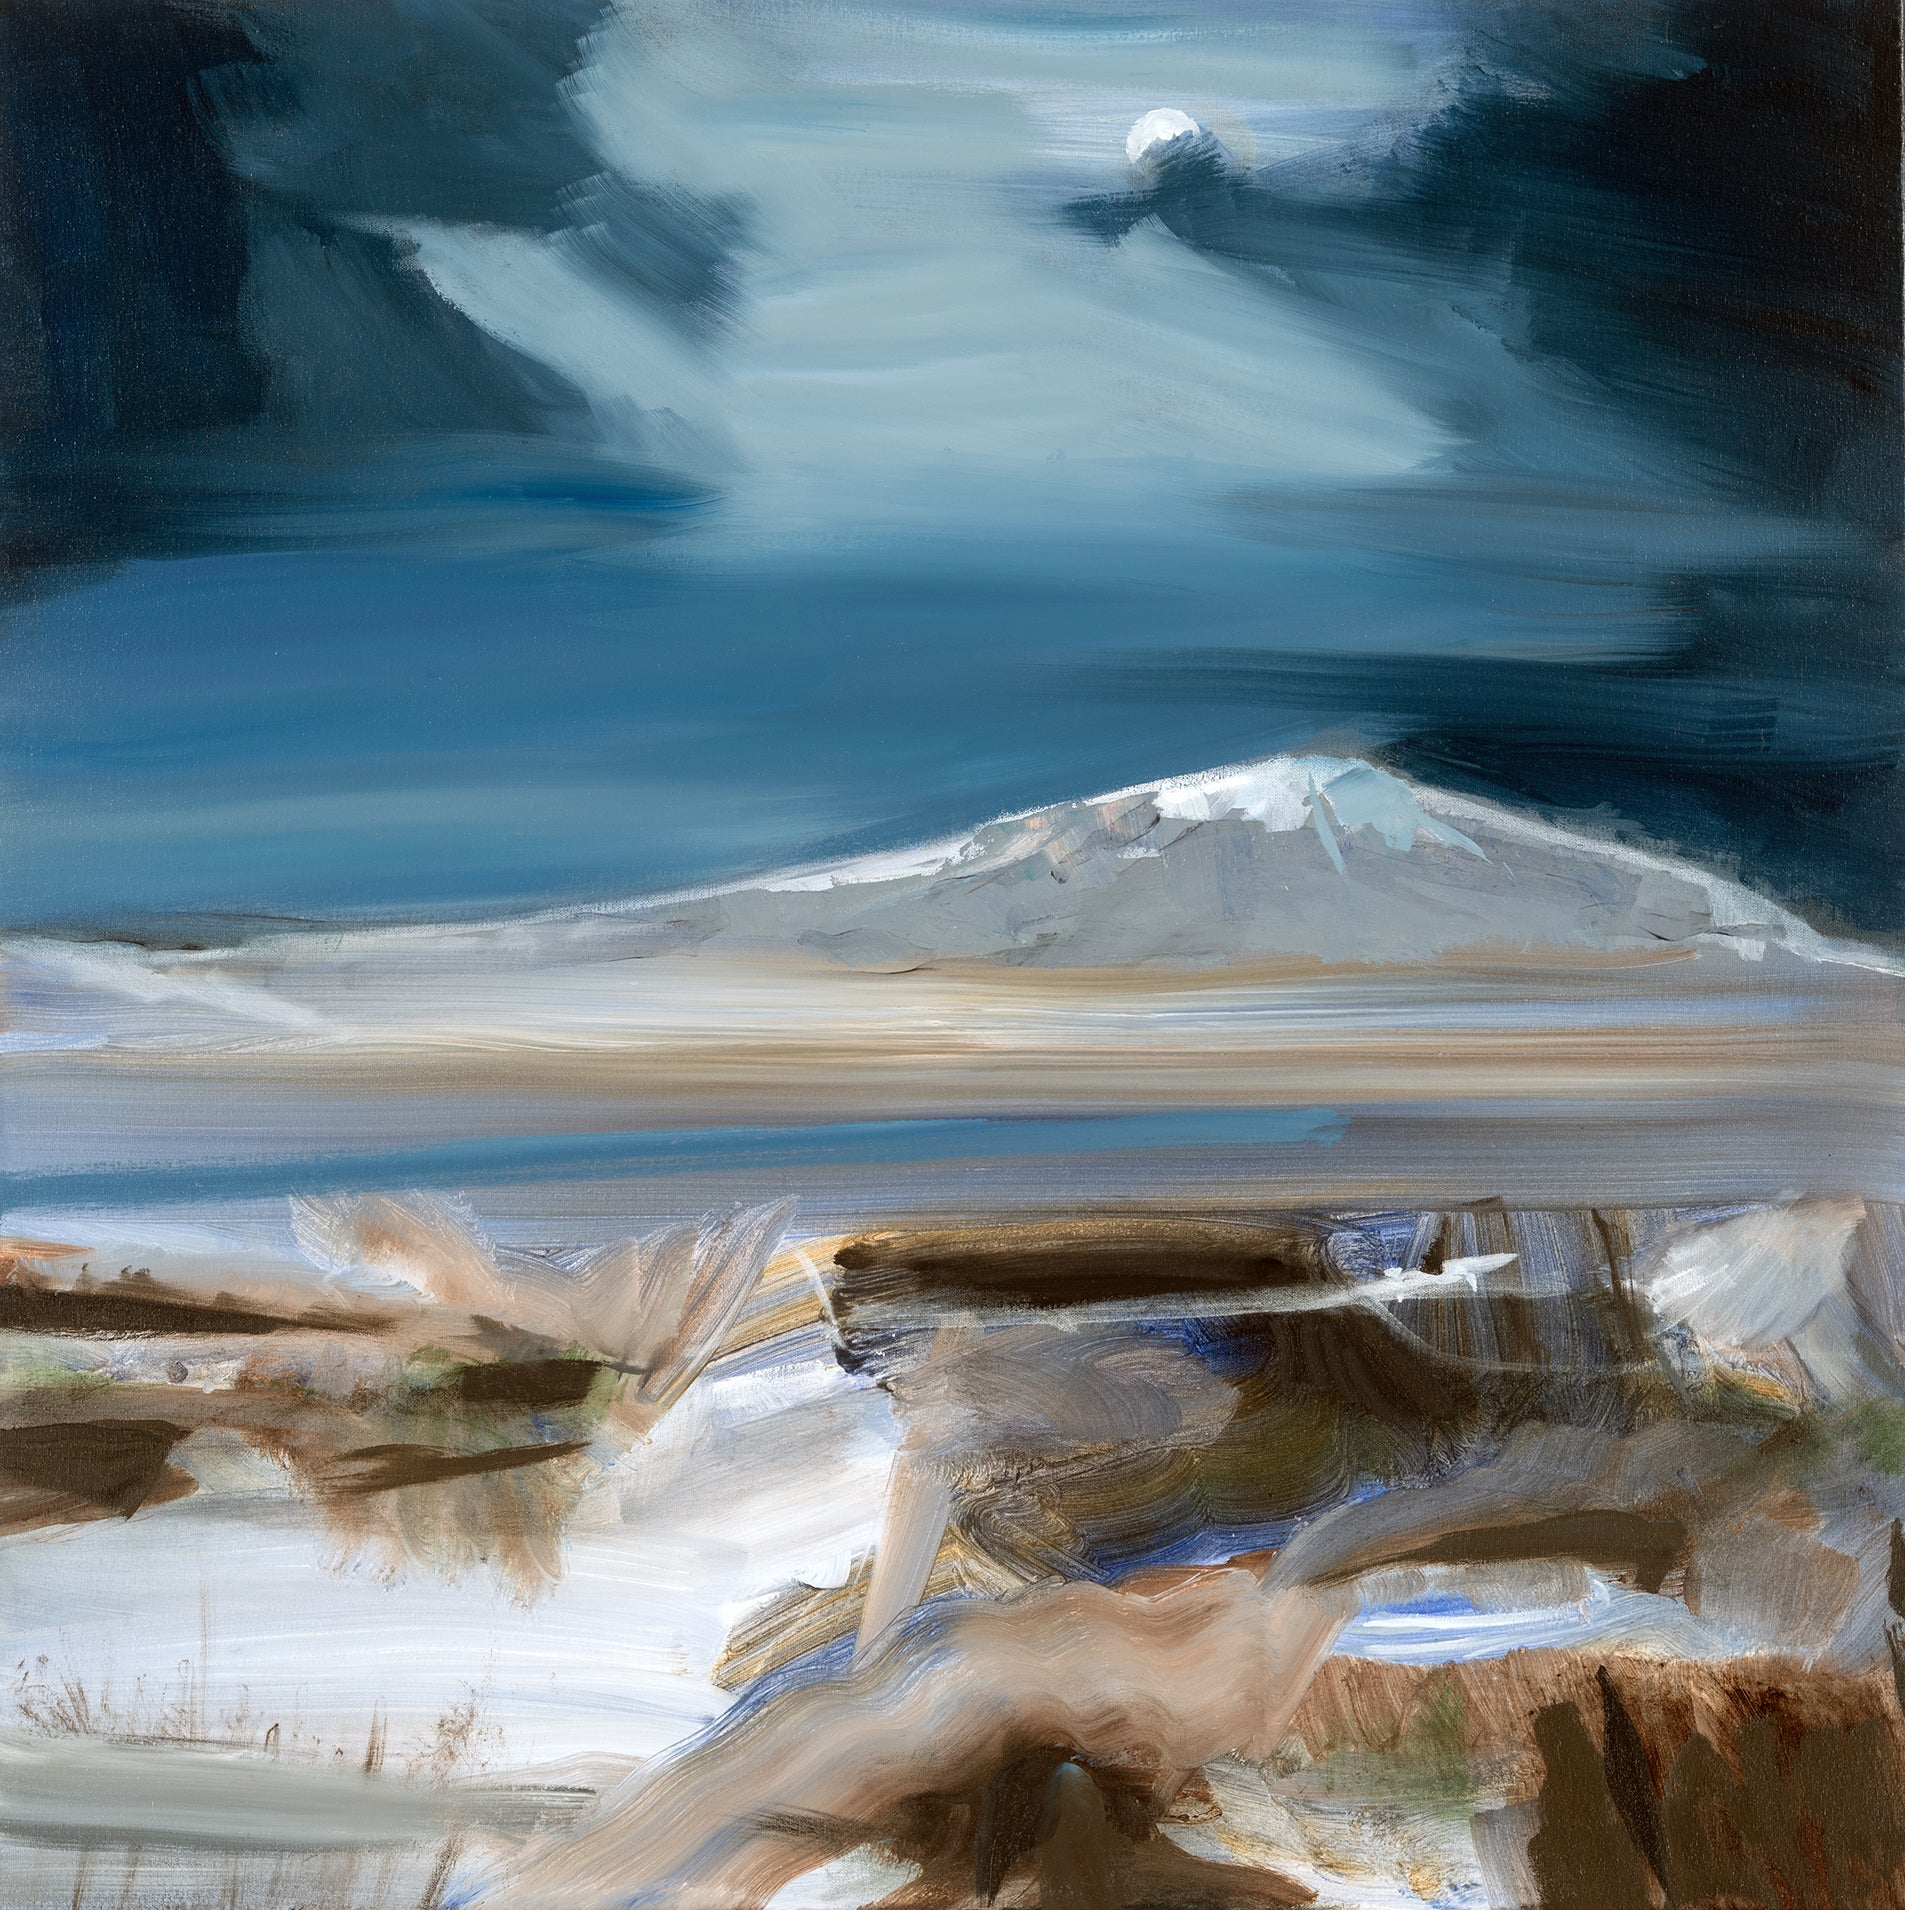 Moon and Mountain - moonlit landscape with strokes of sienna, indigo and white